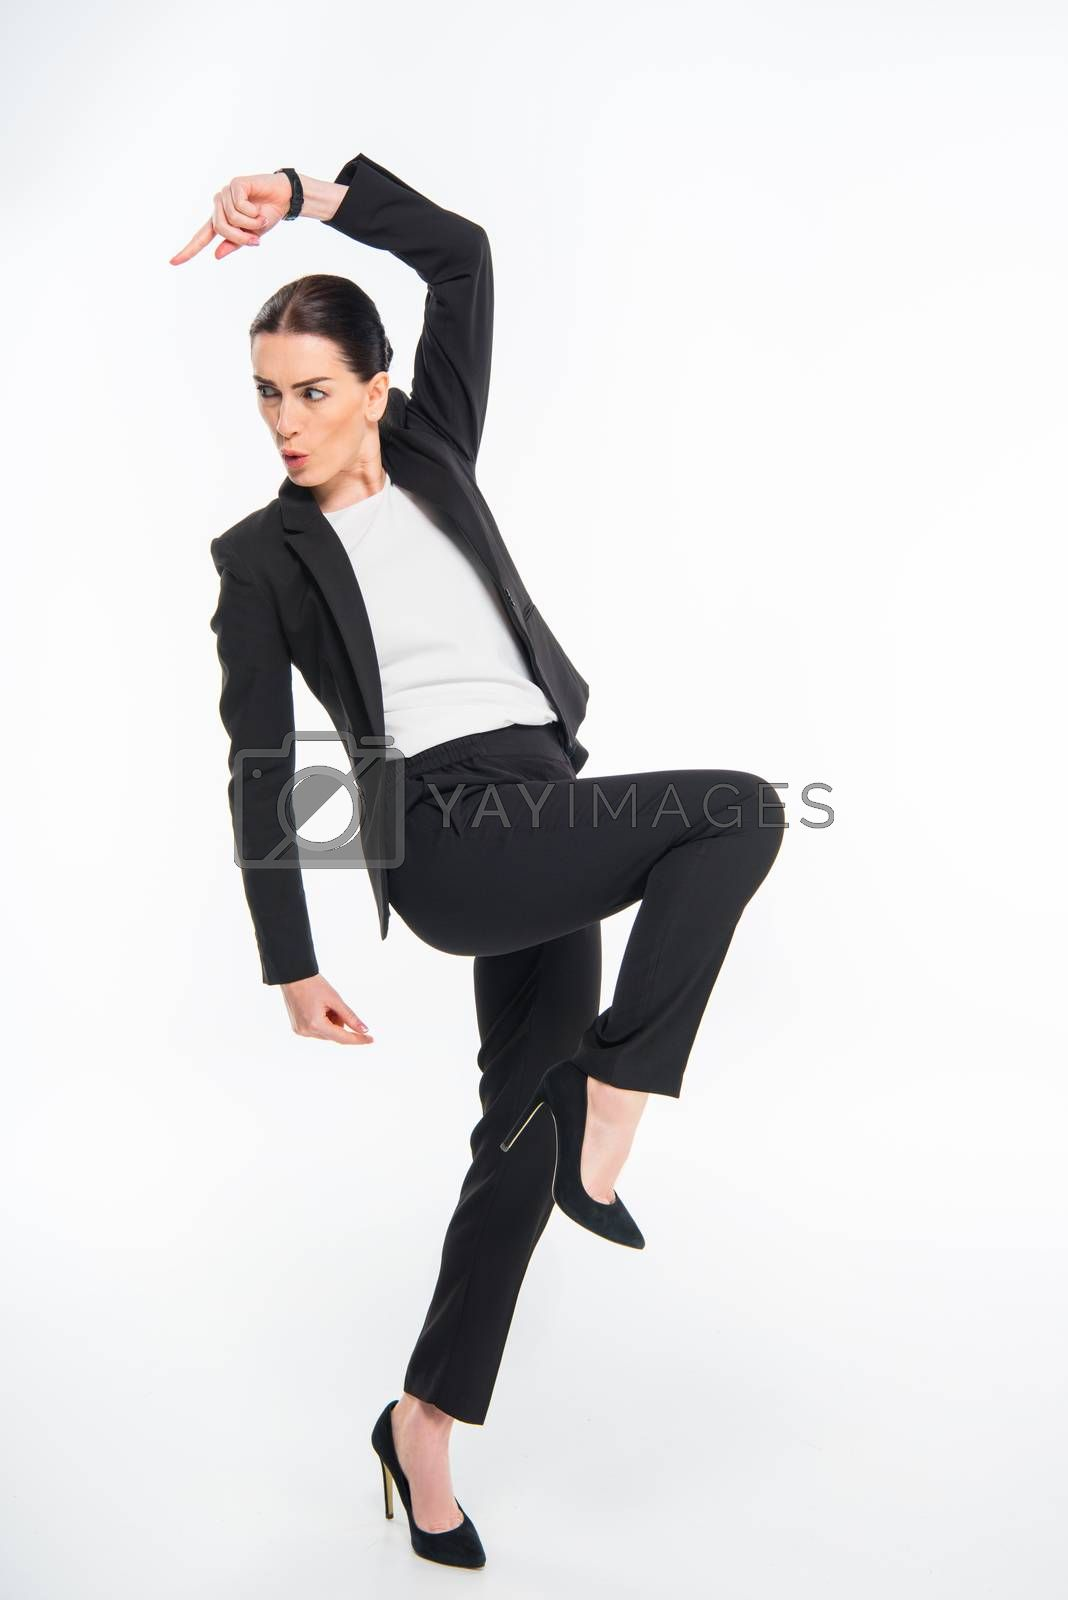 Cheerful attractive businesswoman triumphing and dancing on white